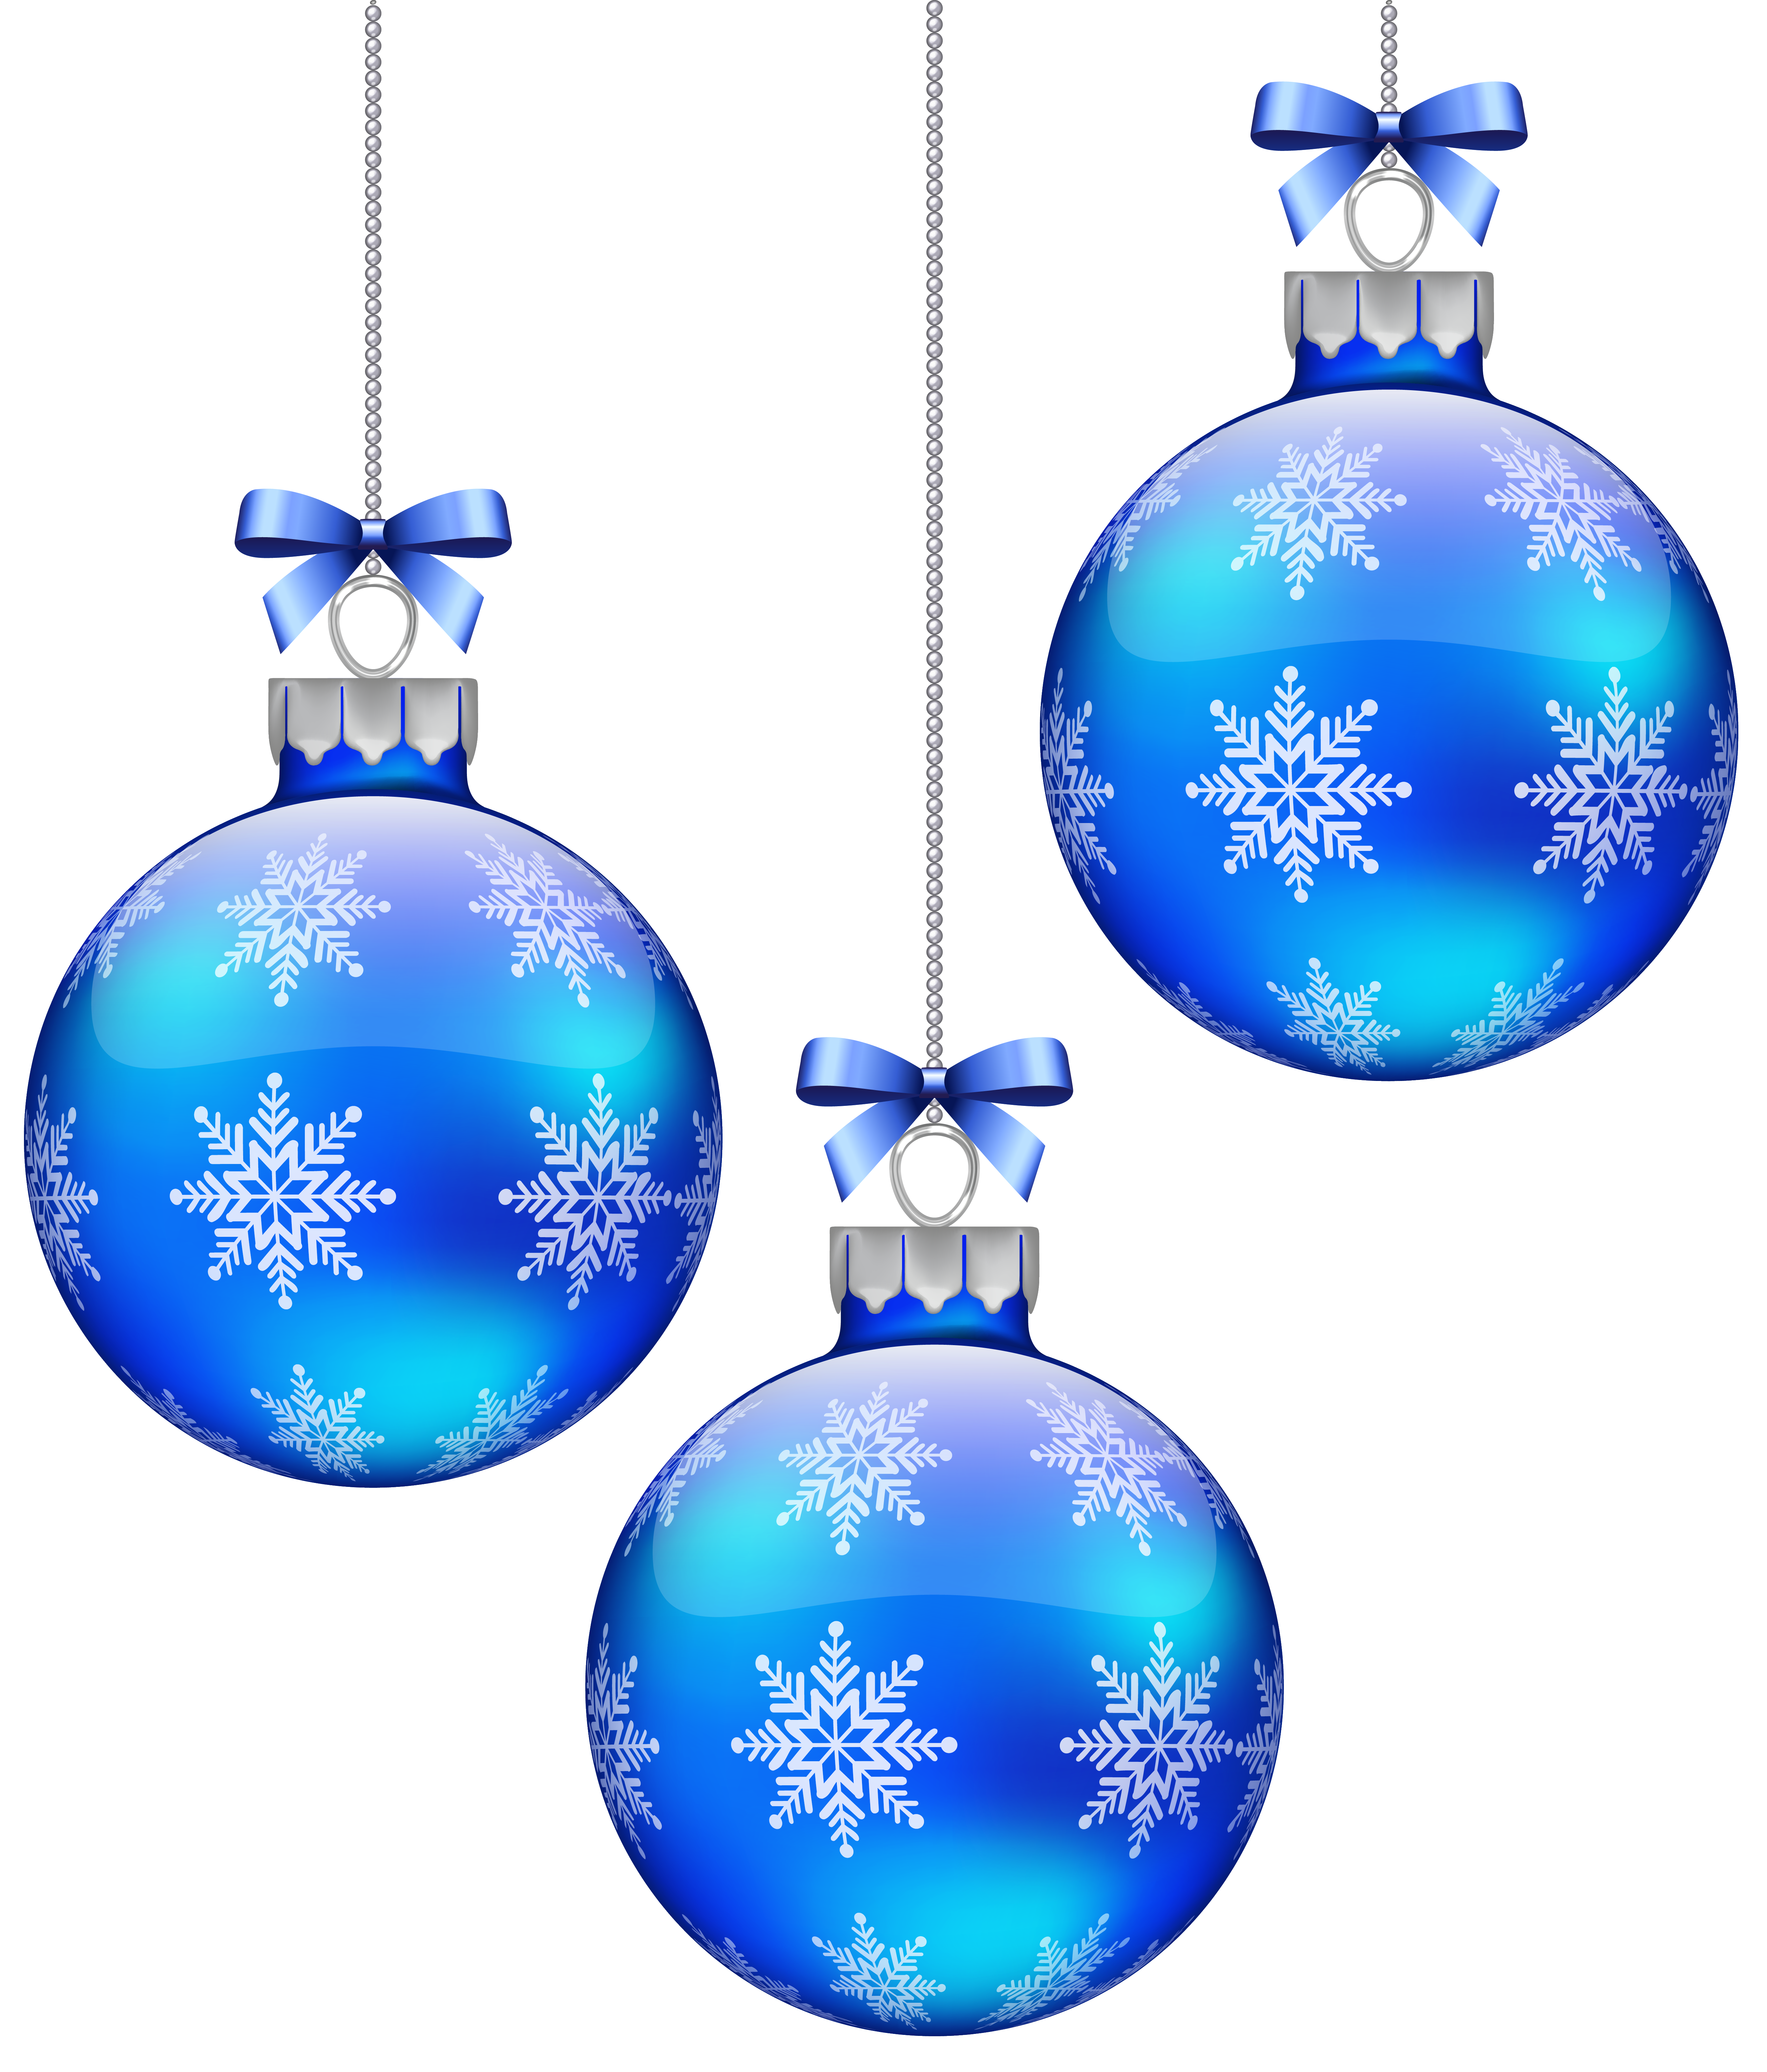 Blue snowflake free banner clipart transparent Blue Christmas Balls Decoration PNG Clipart Image | Gallery ... transparent